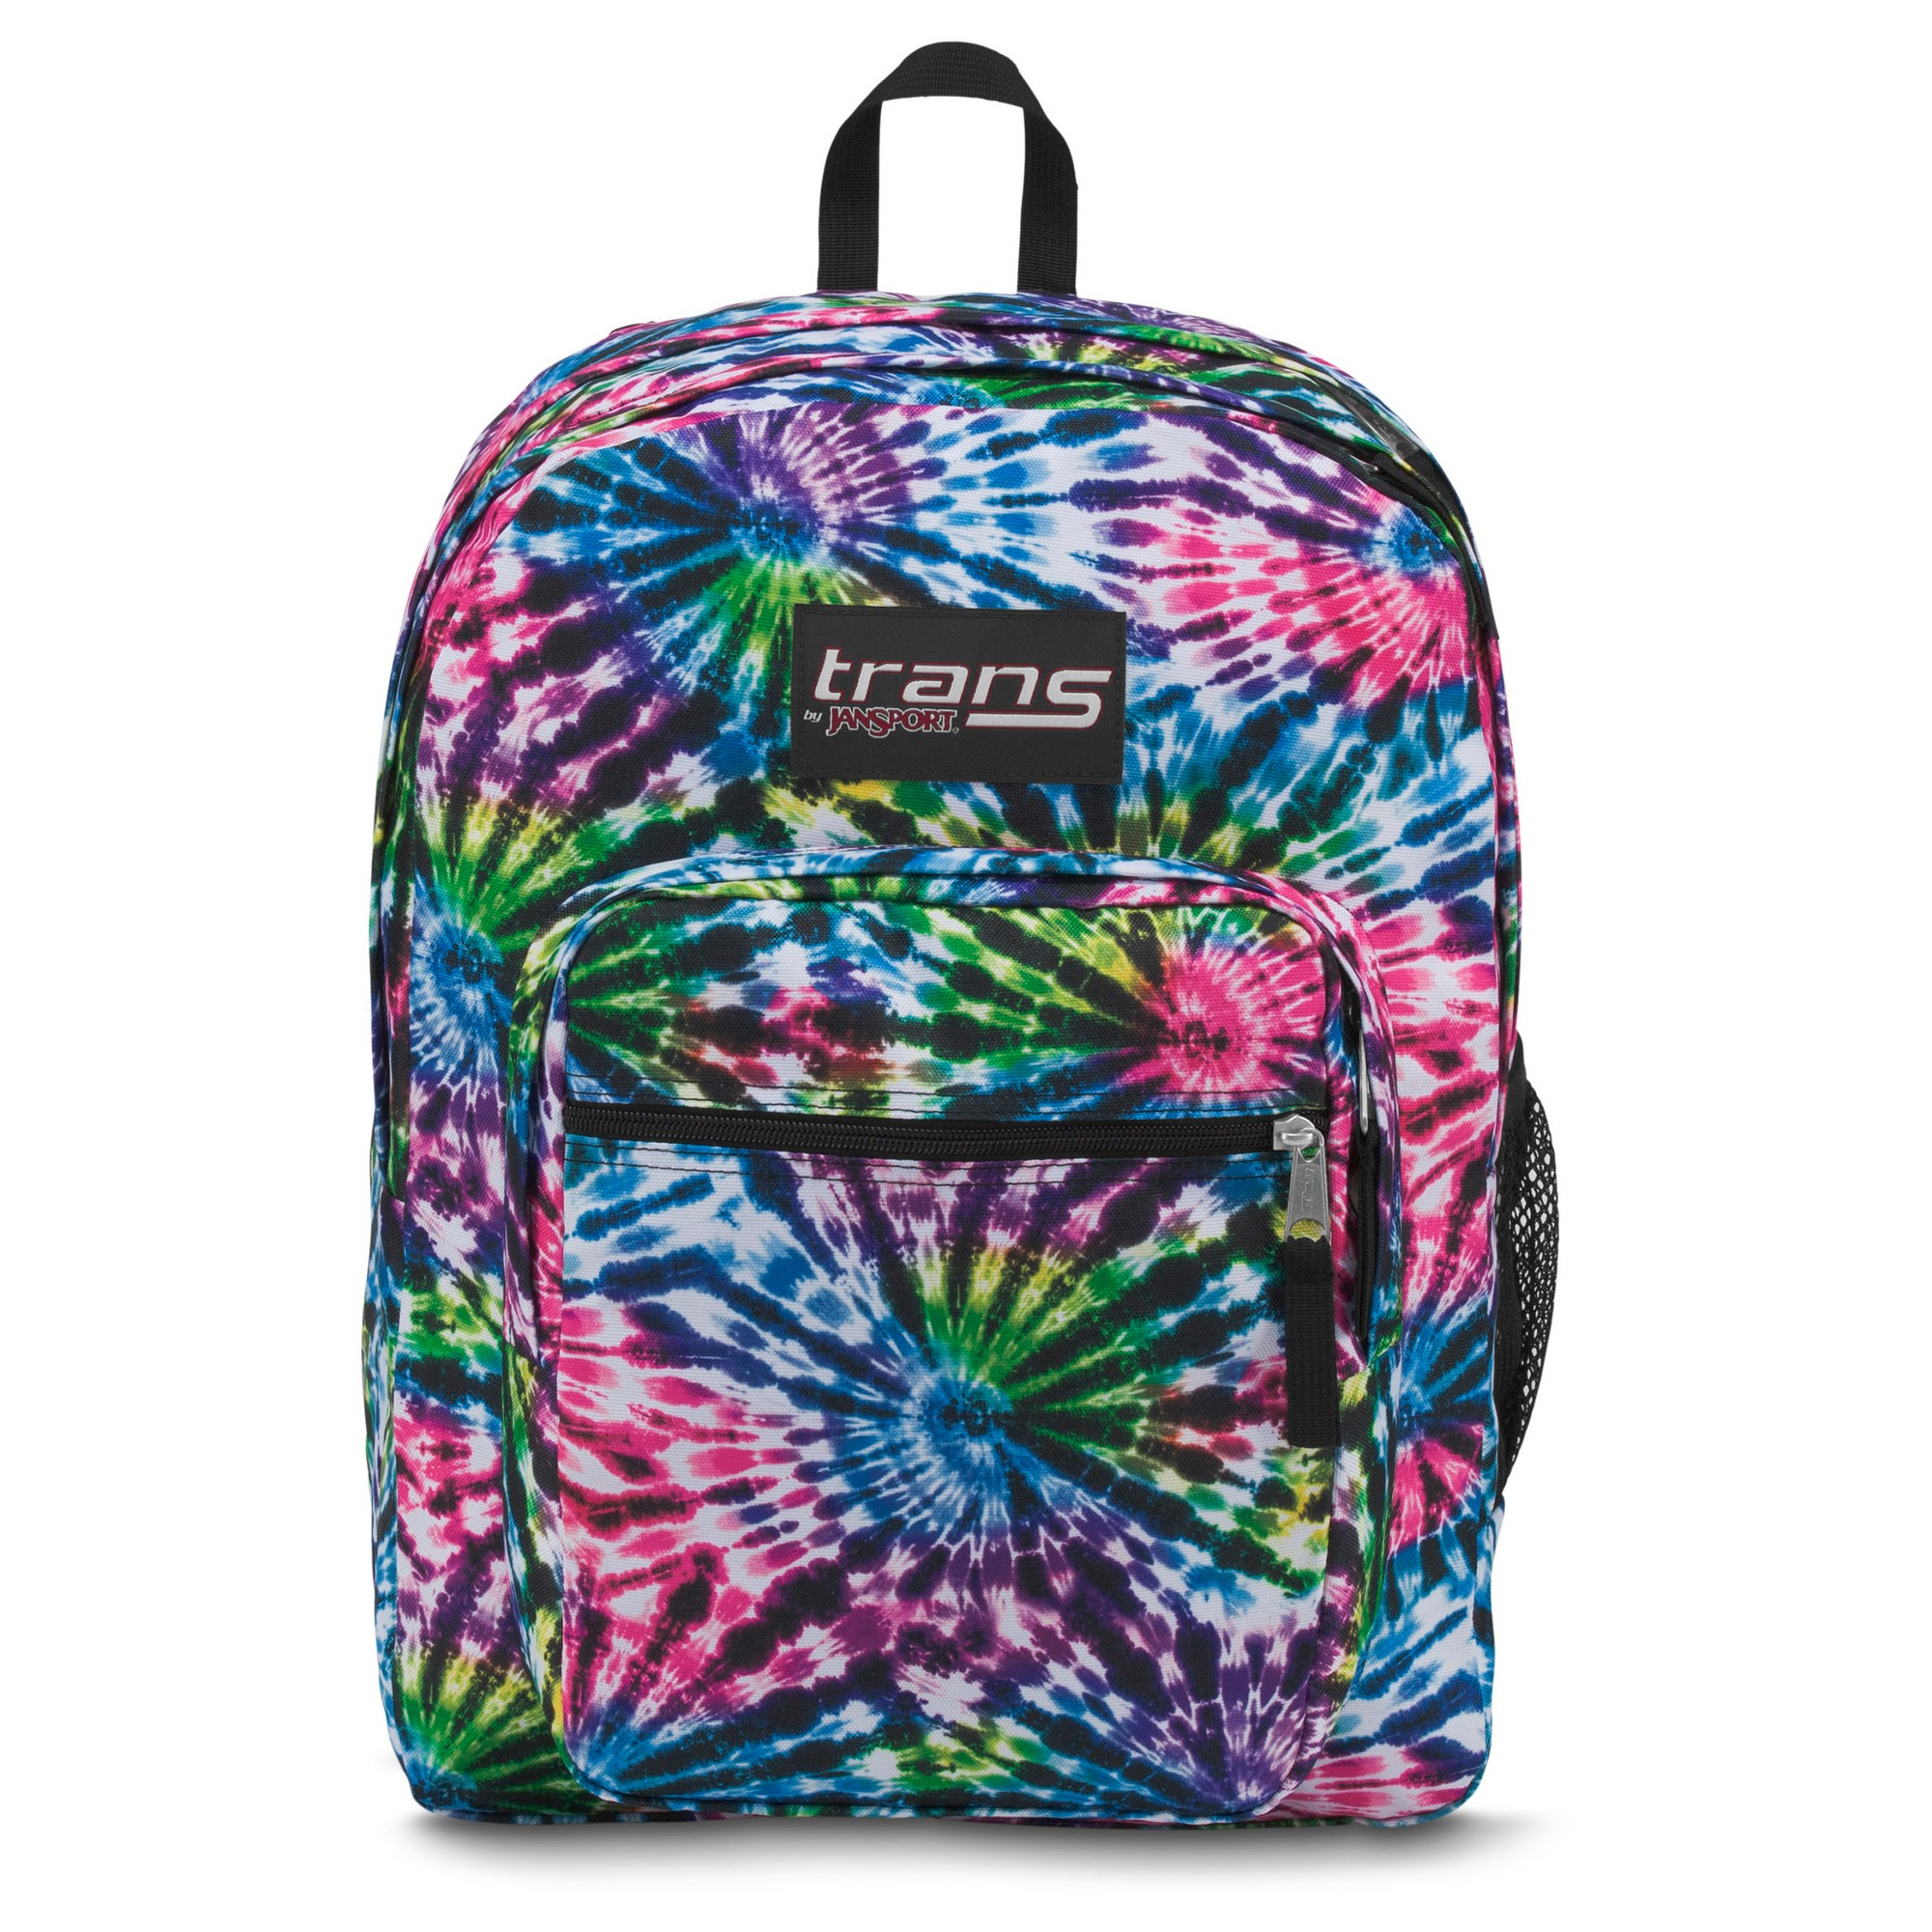 0feab5d58d Trans By Jansport 17 Supermax Backpack- Fenix Toulouse Handball